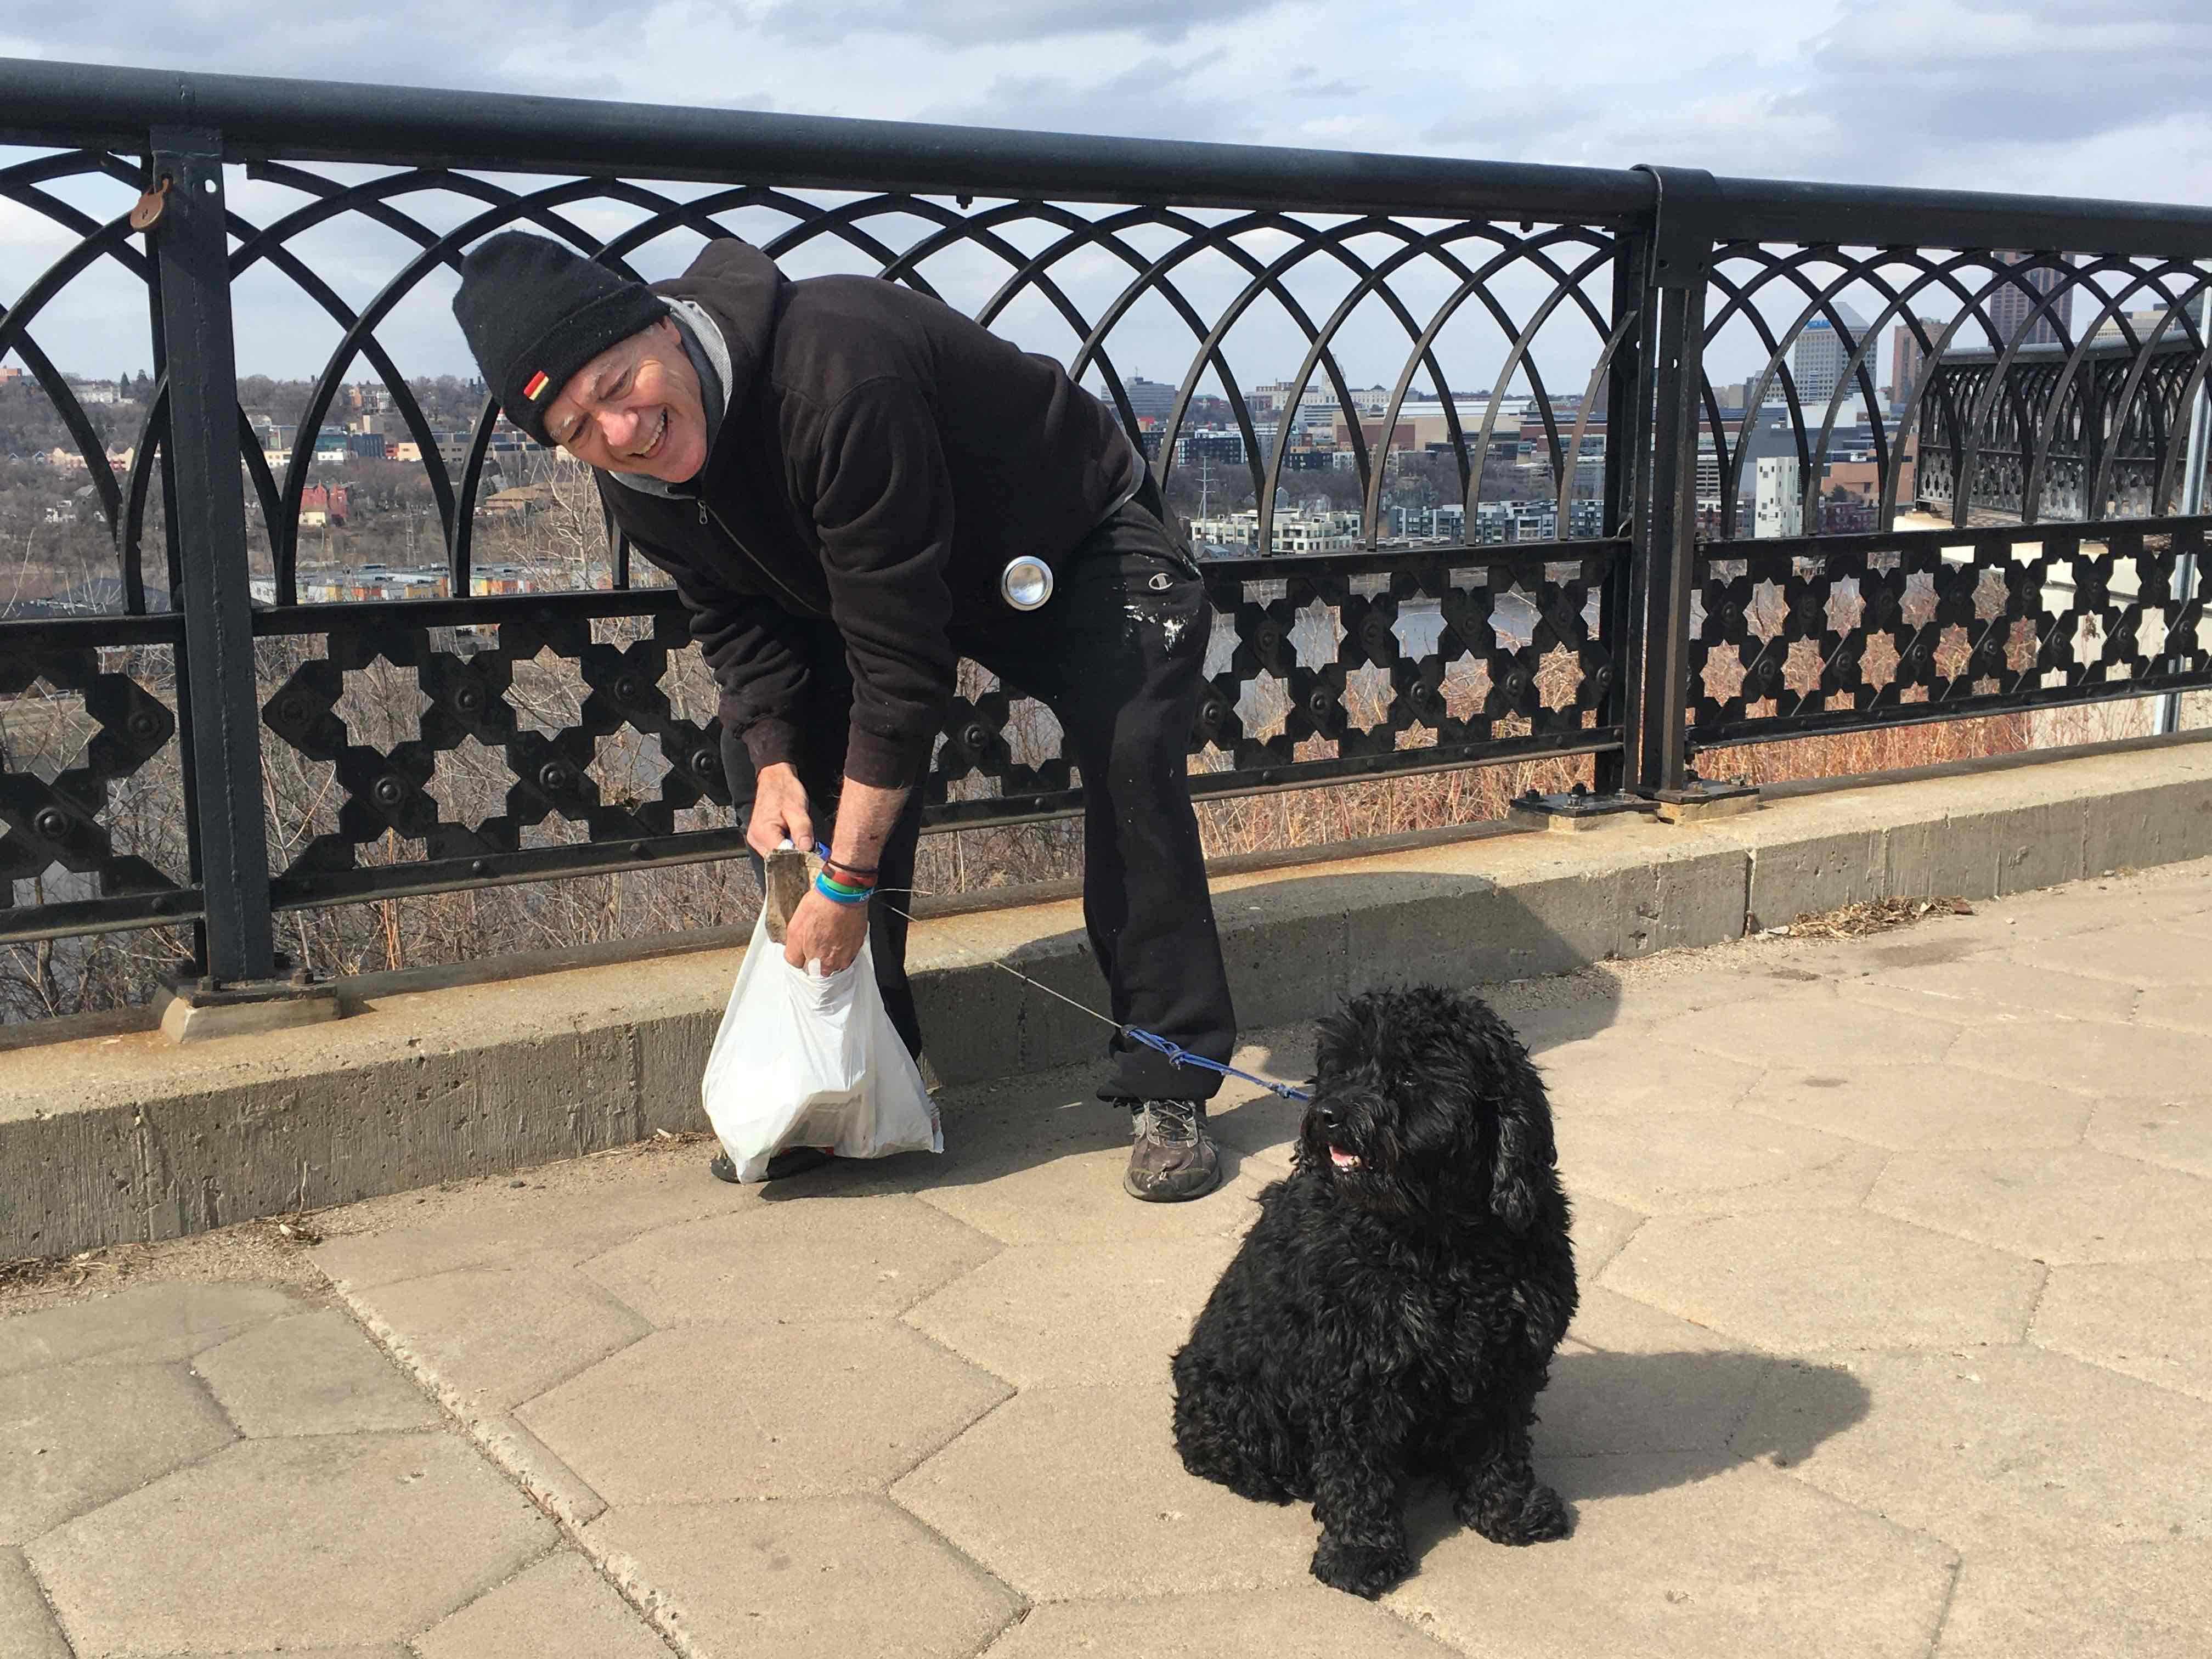 Nico the dog and his human pick up trash on a bridge over the Mississippi